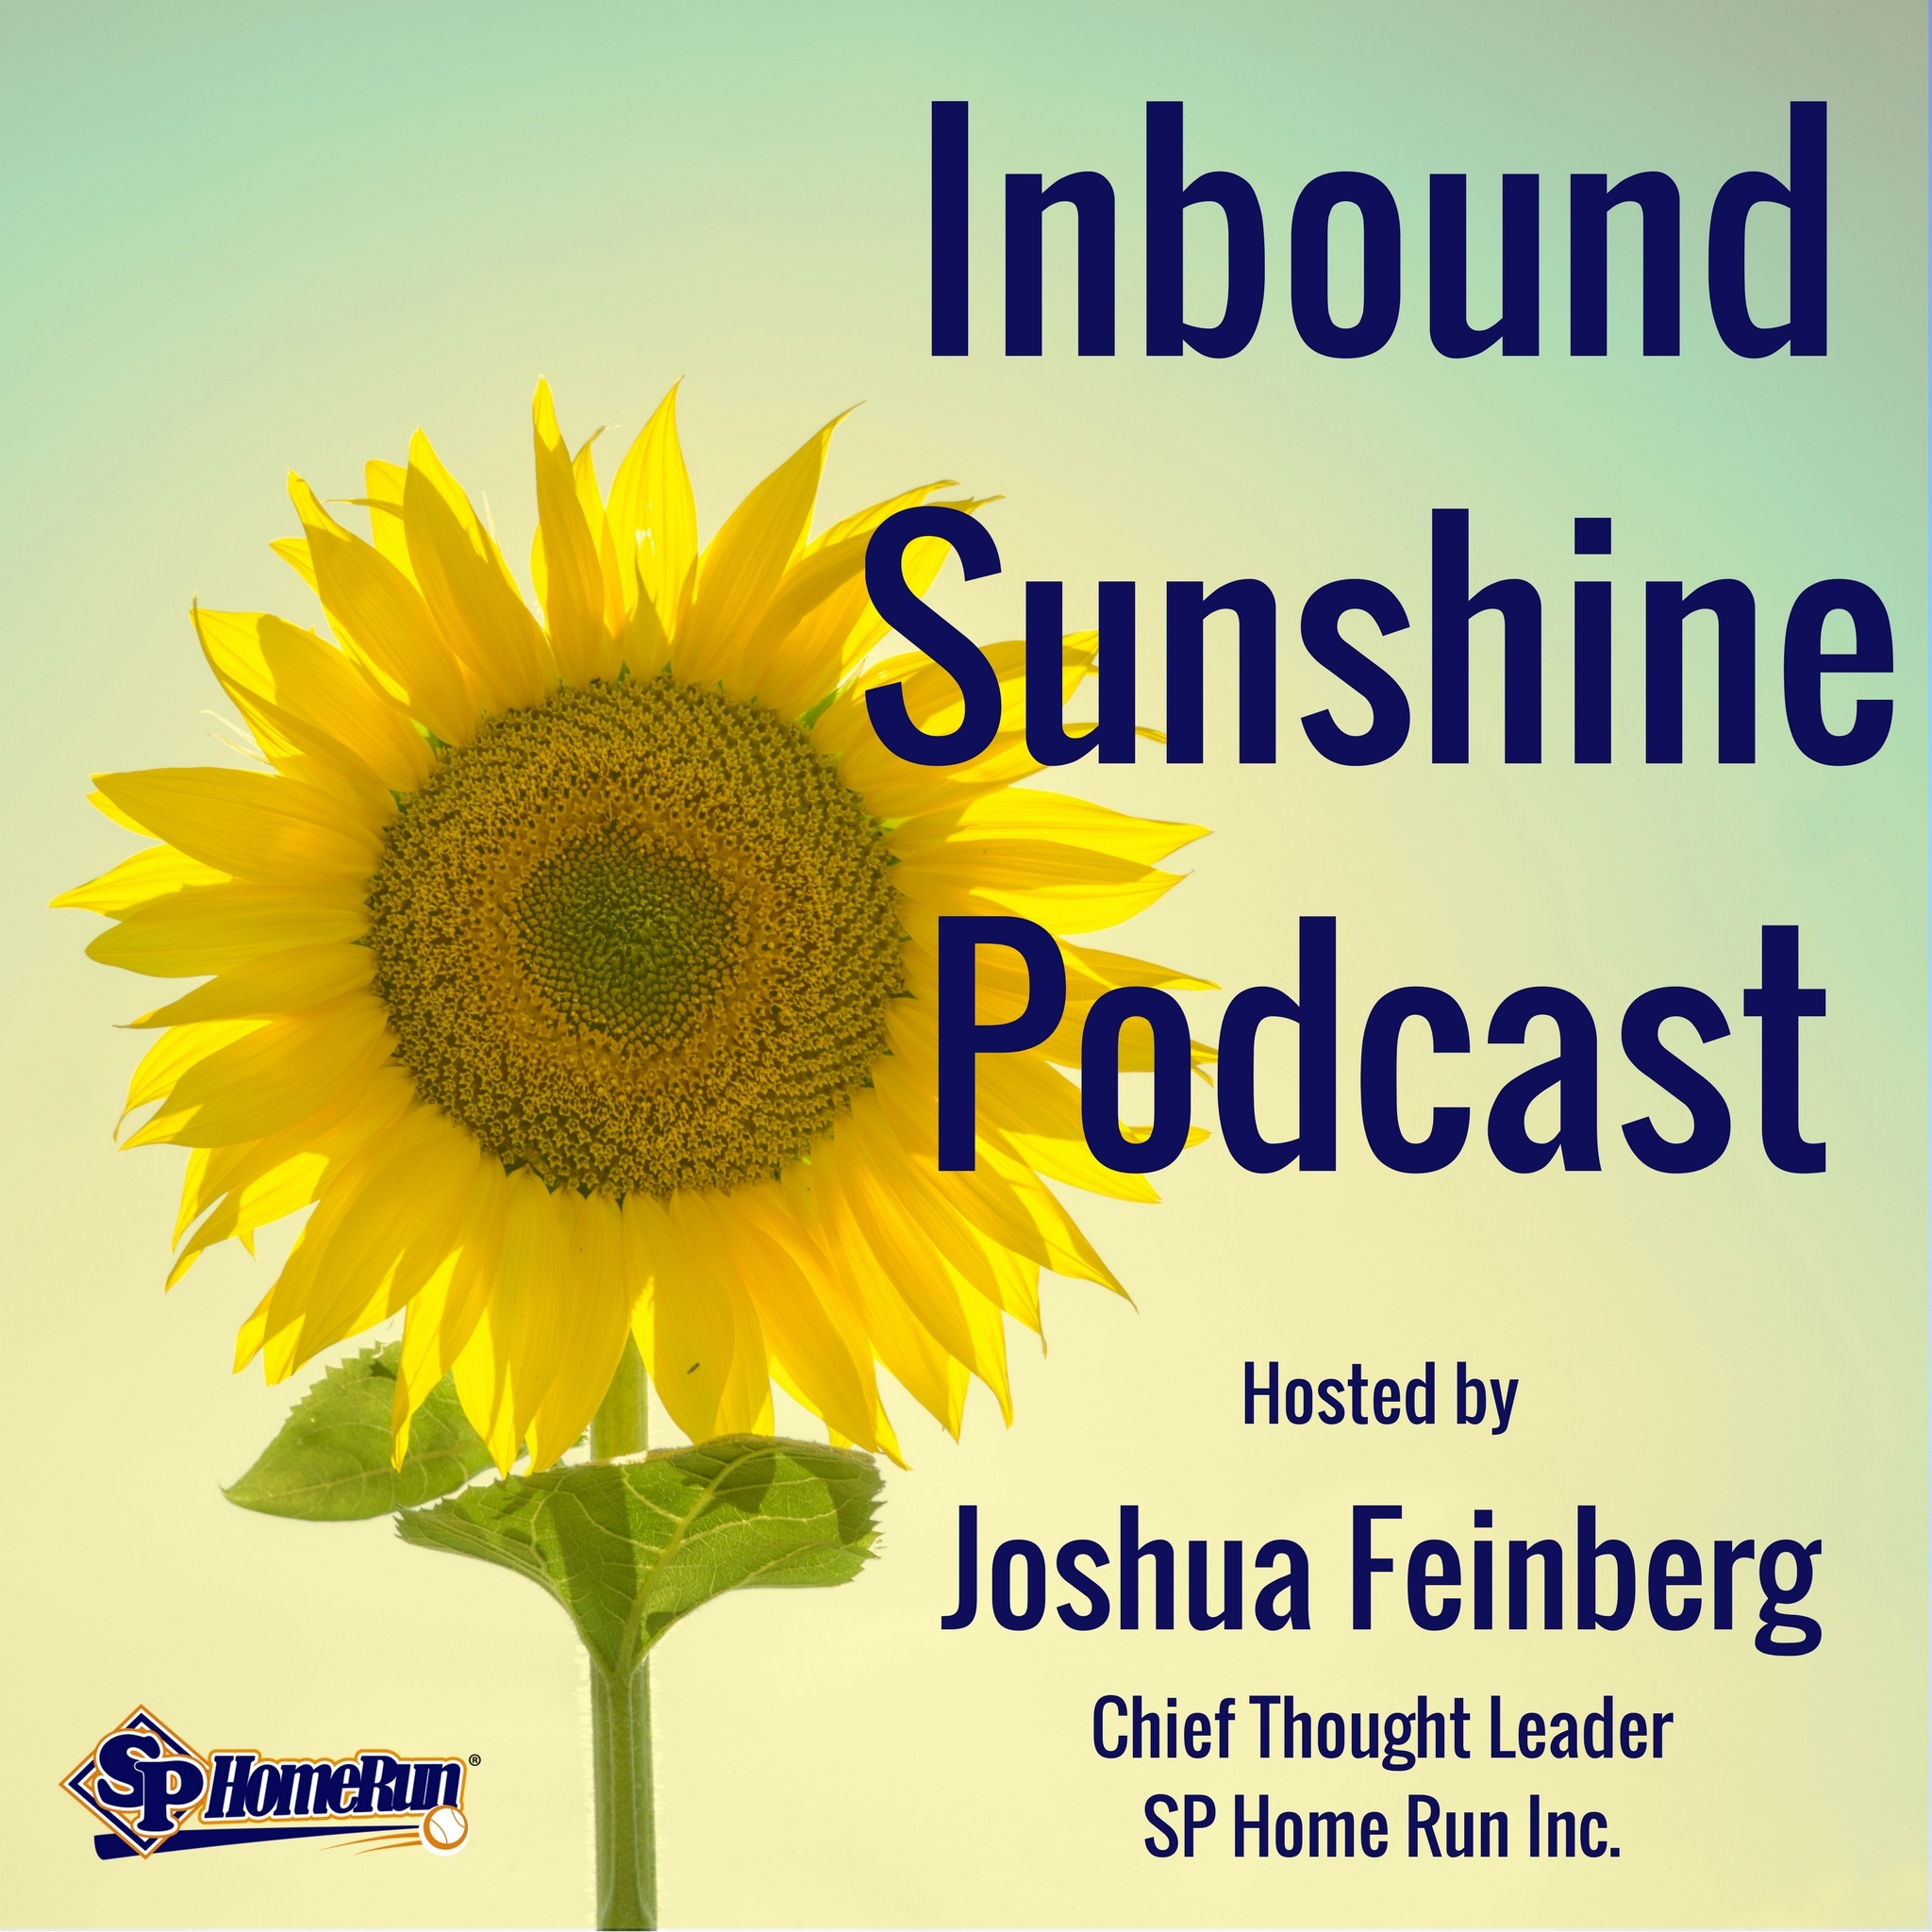 Inbound Sunshine Podcast